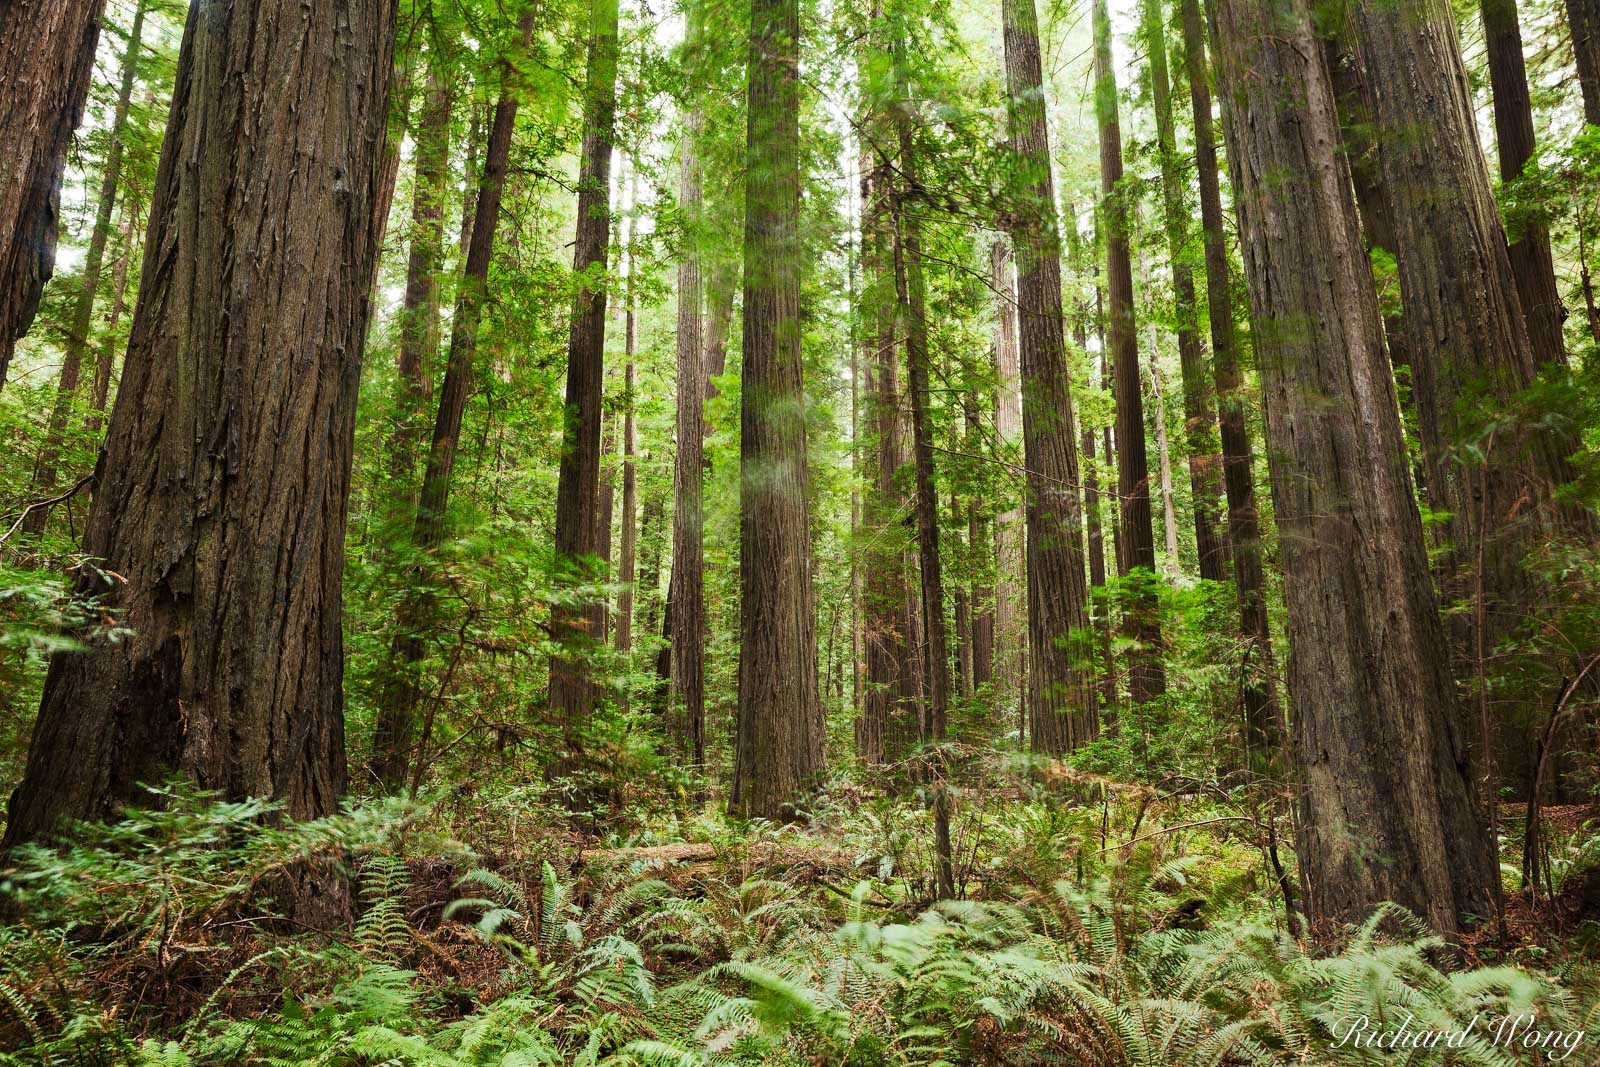 Founder's Grove Old-Growth Redwood Forest, Humboldt Redwoods State Park, California, photo